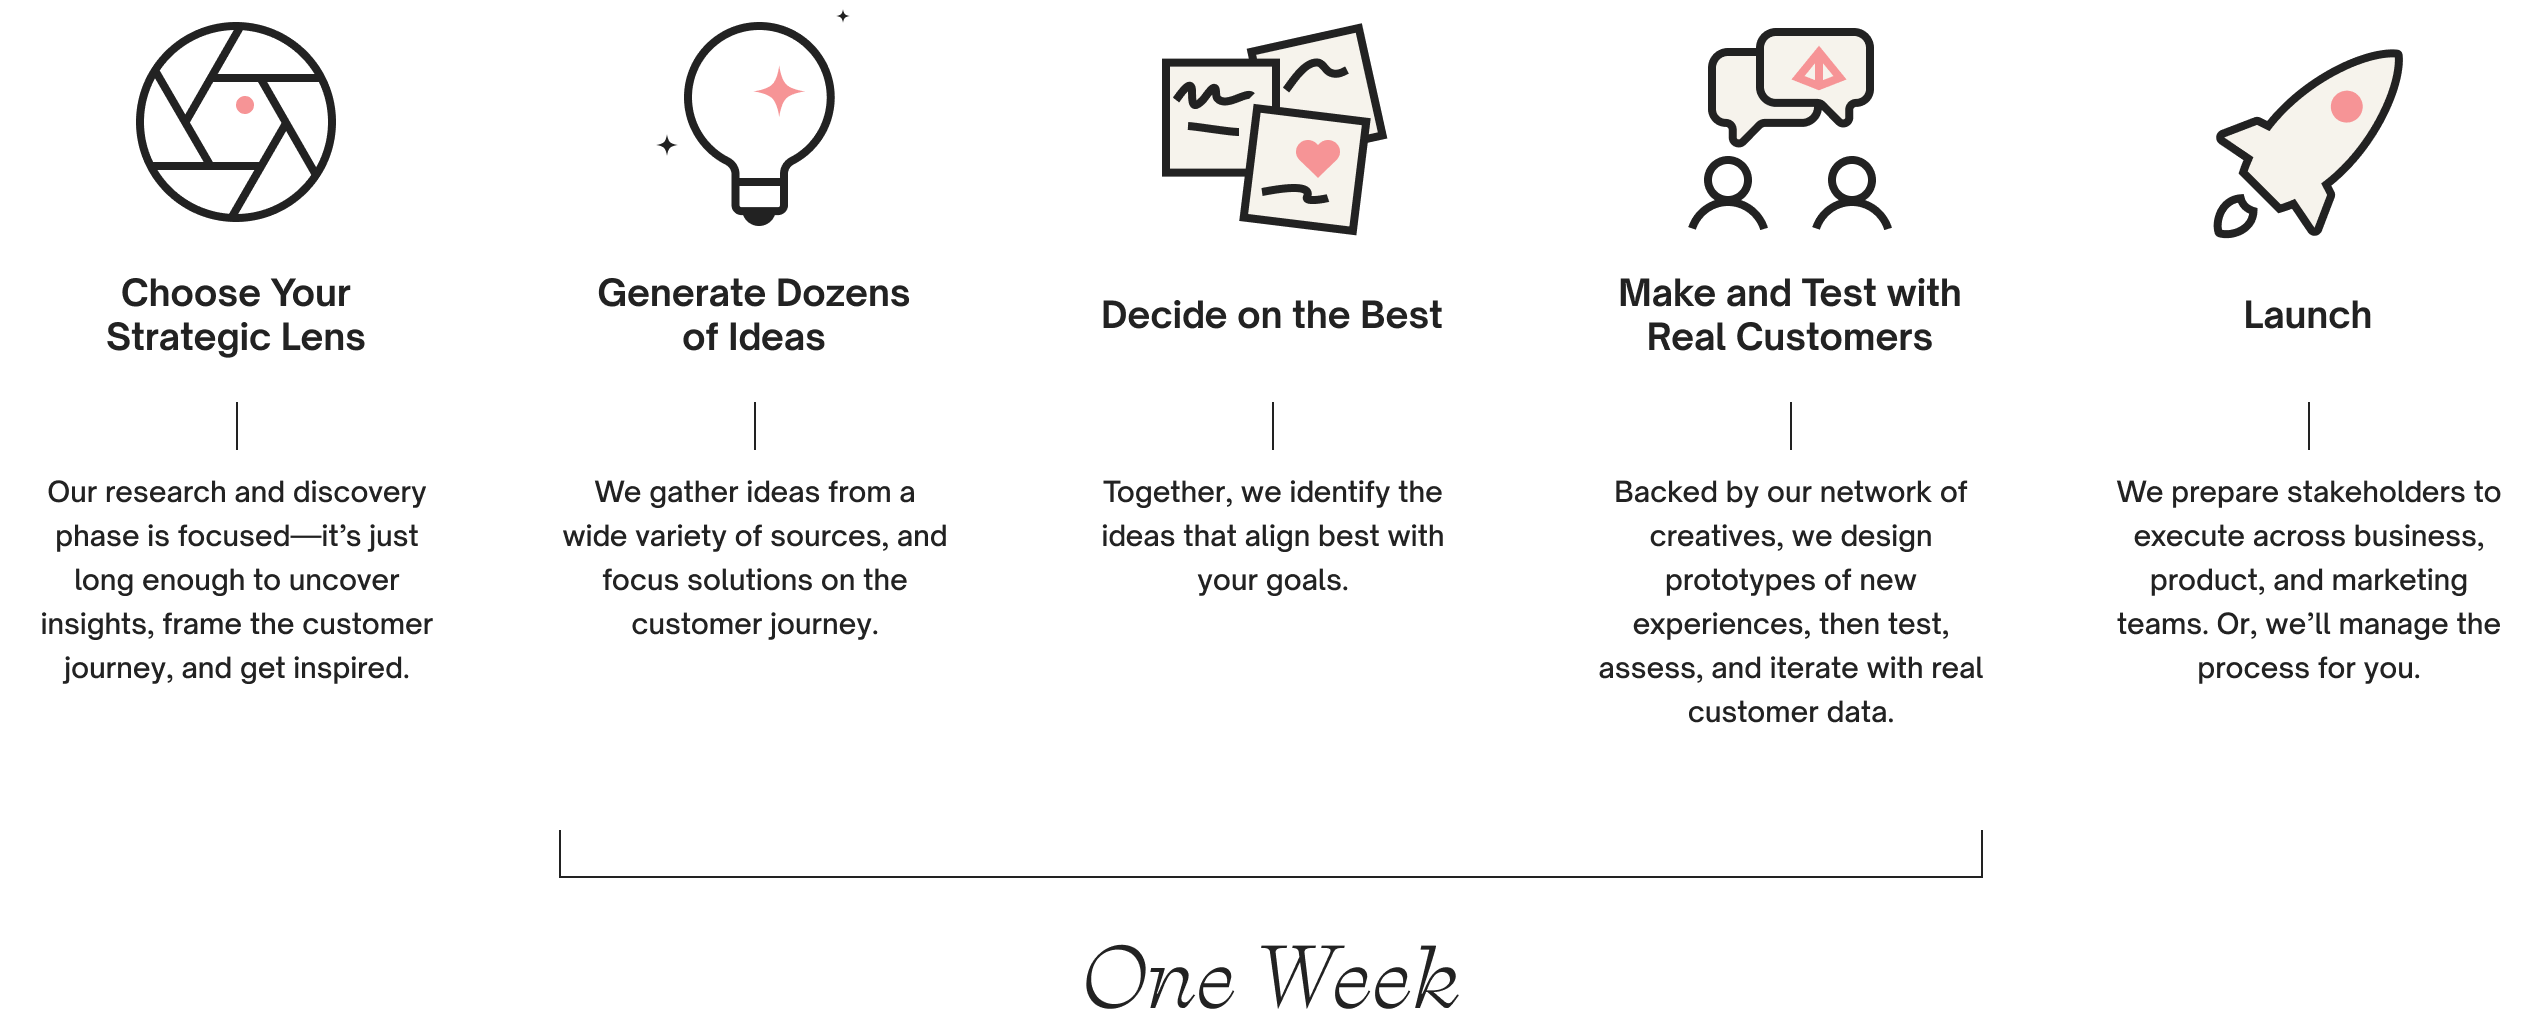 Our innovation sprint process which takes place over a single week.